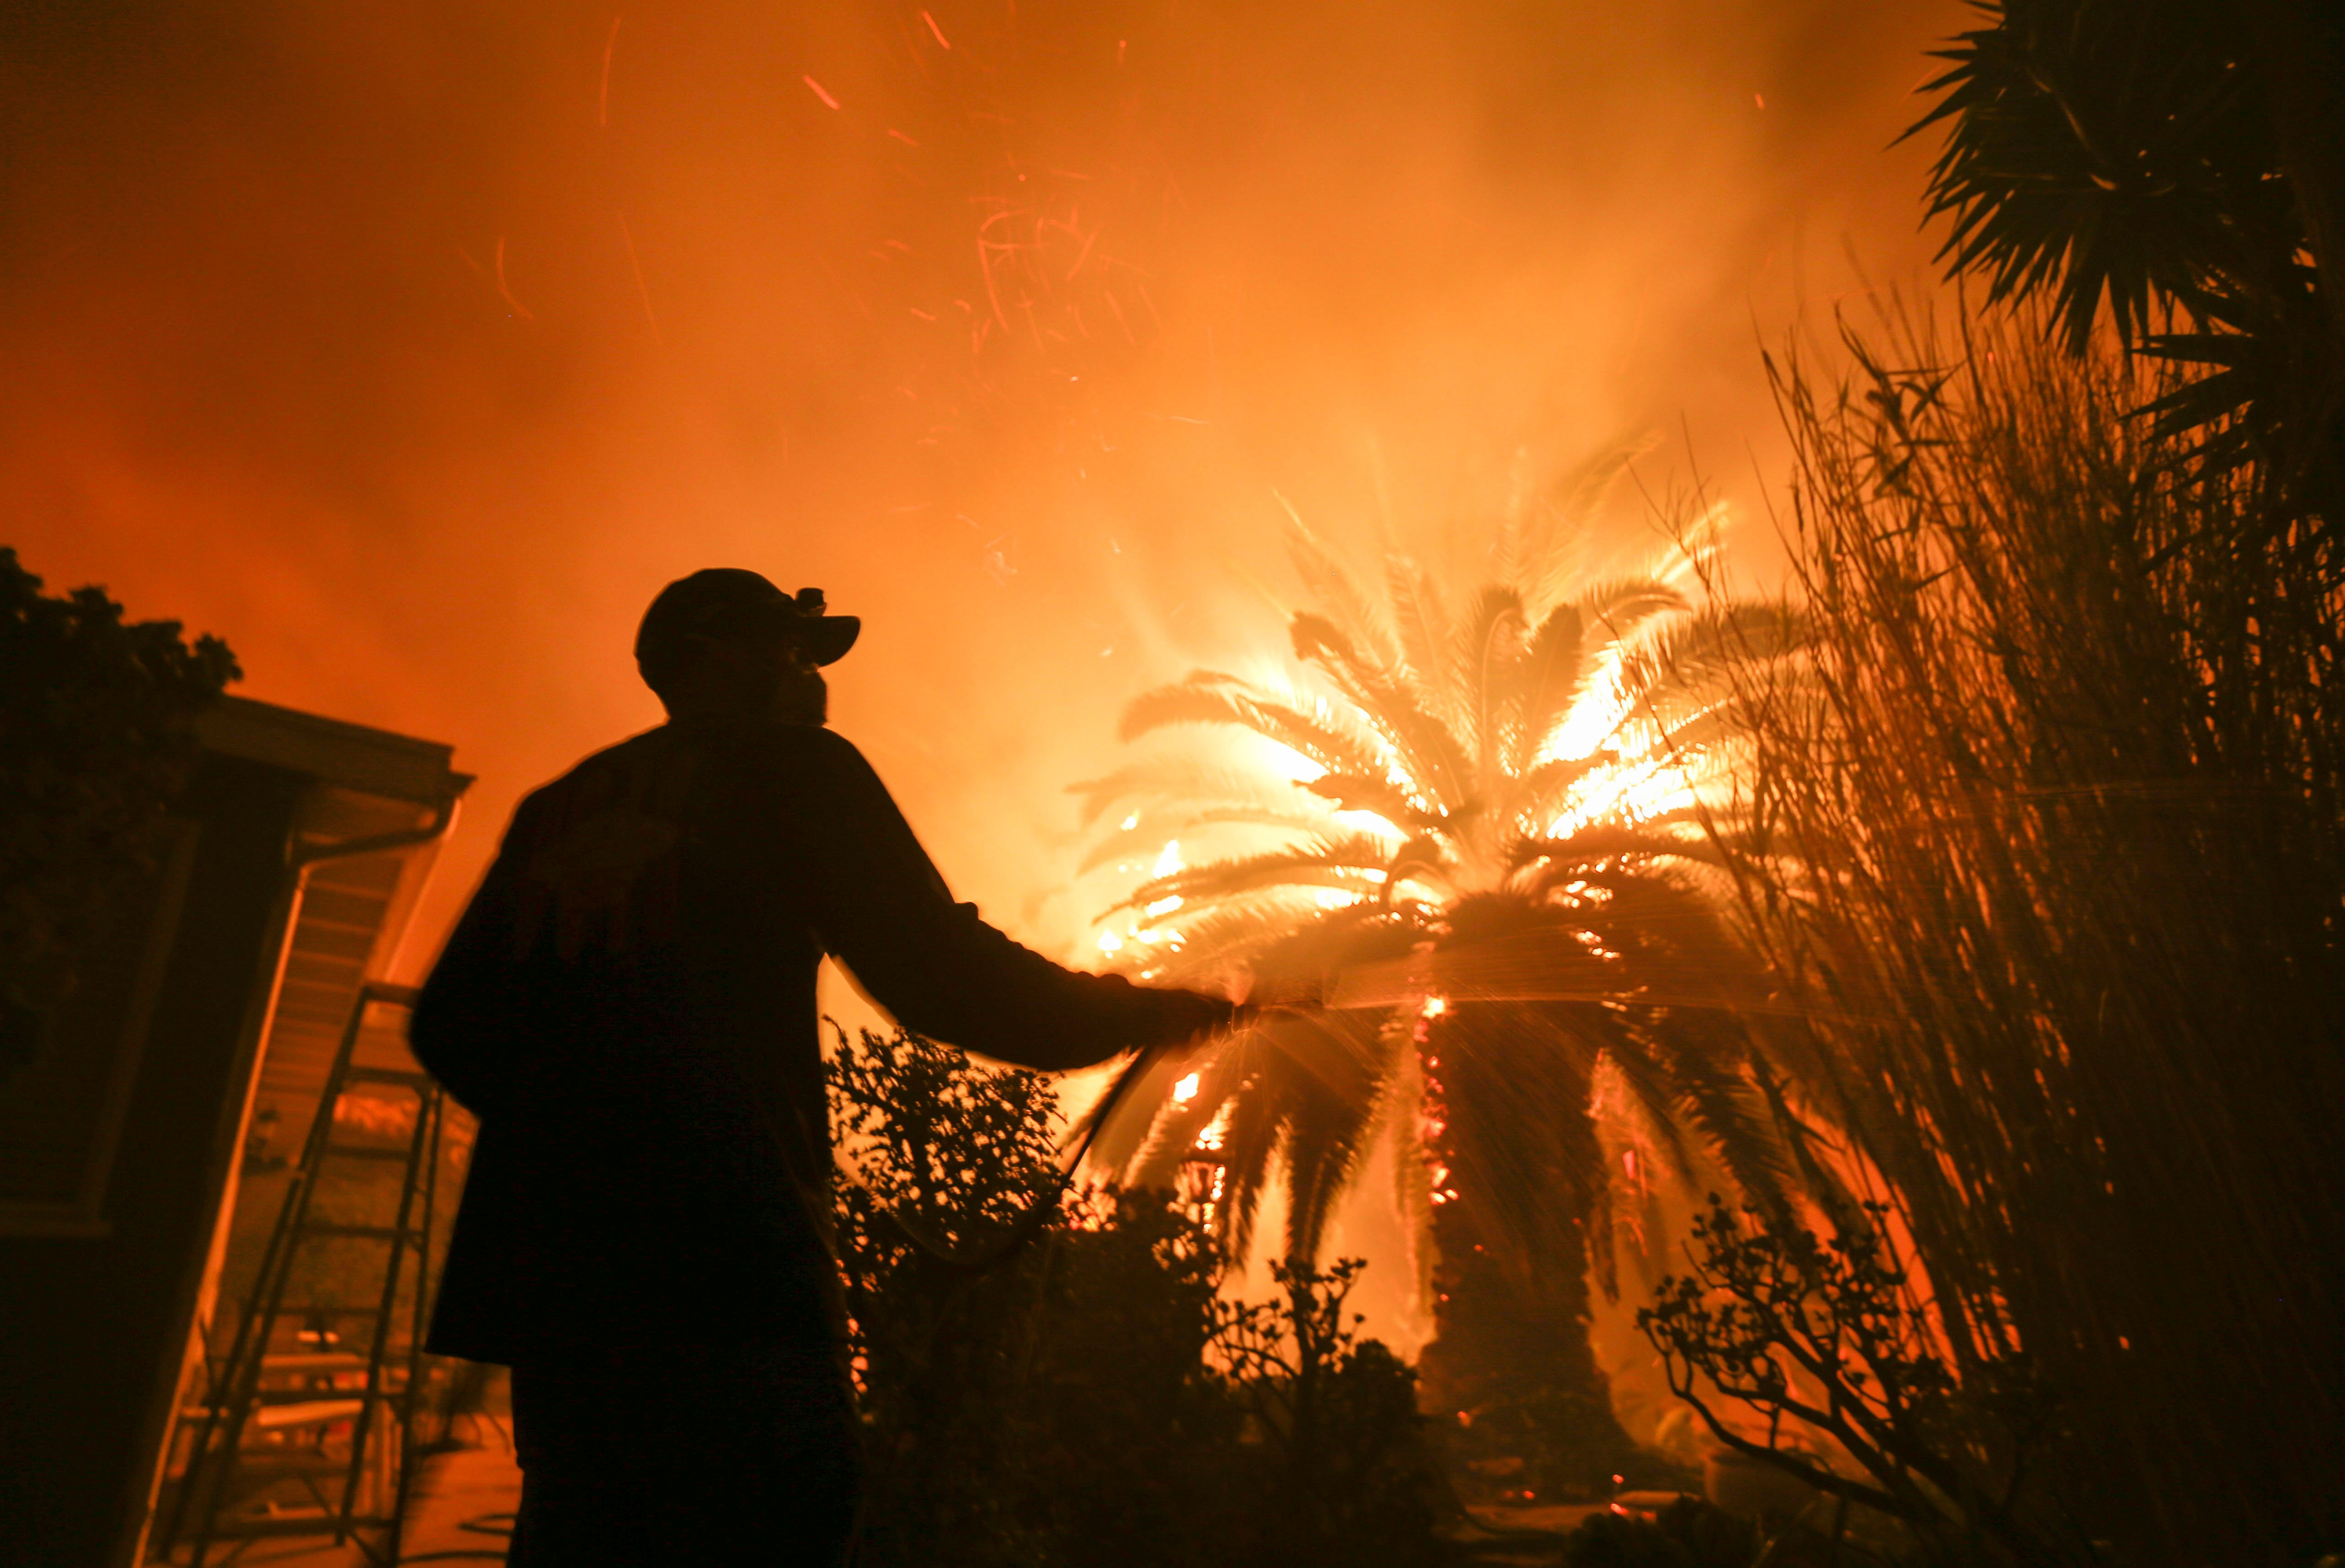 Park Billow, 27, sprays water on the hot spots in his backyard as the Woolsey fire burns in Malibu, California, Nov. 9, 2018.